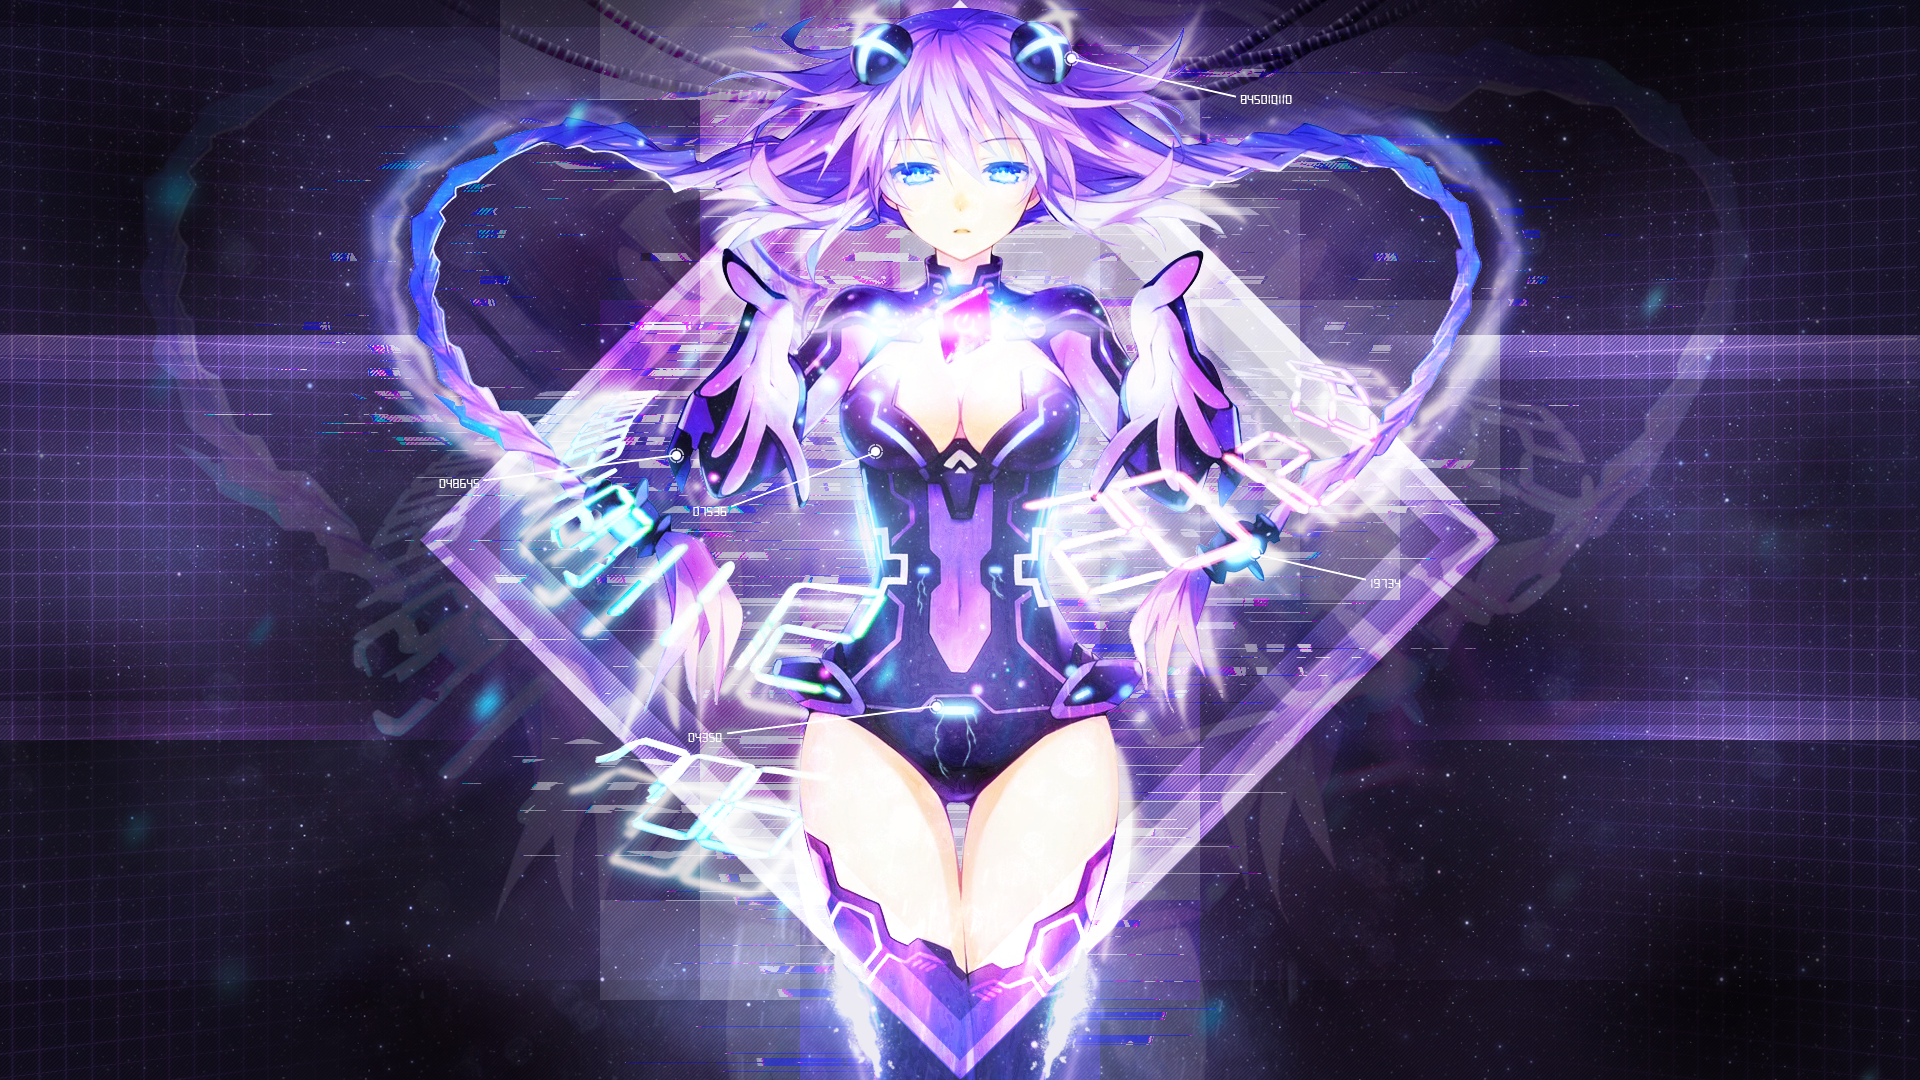 hyperdimension neptunia wallpaper engine